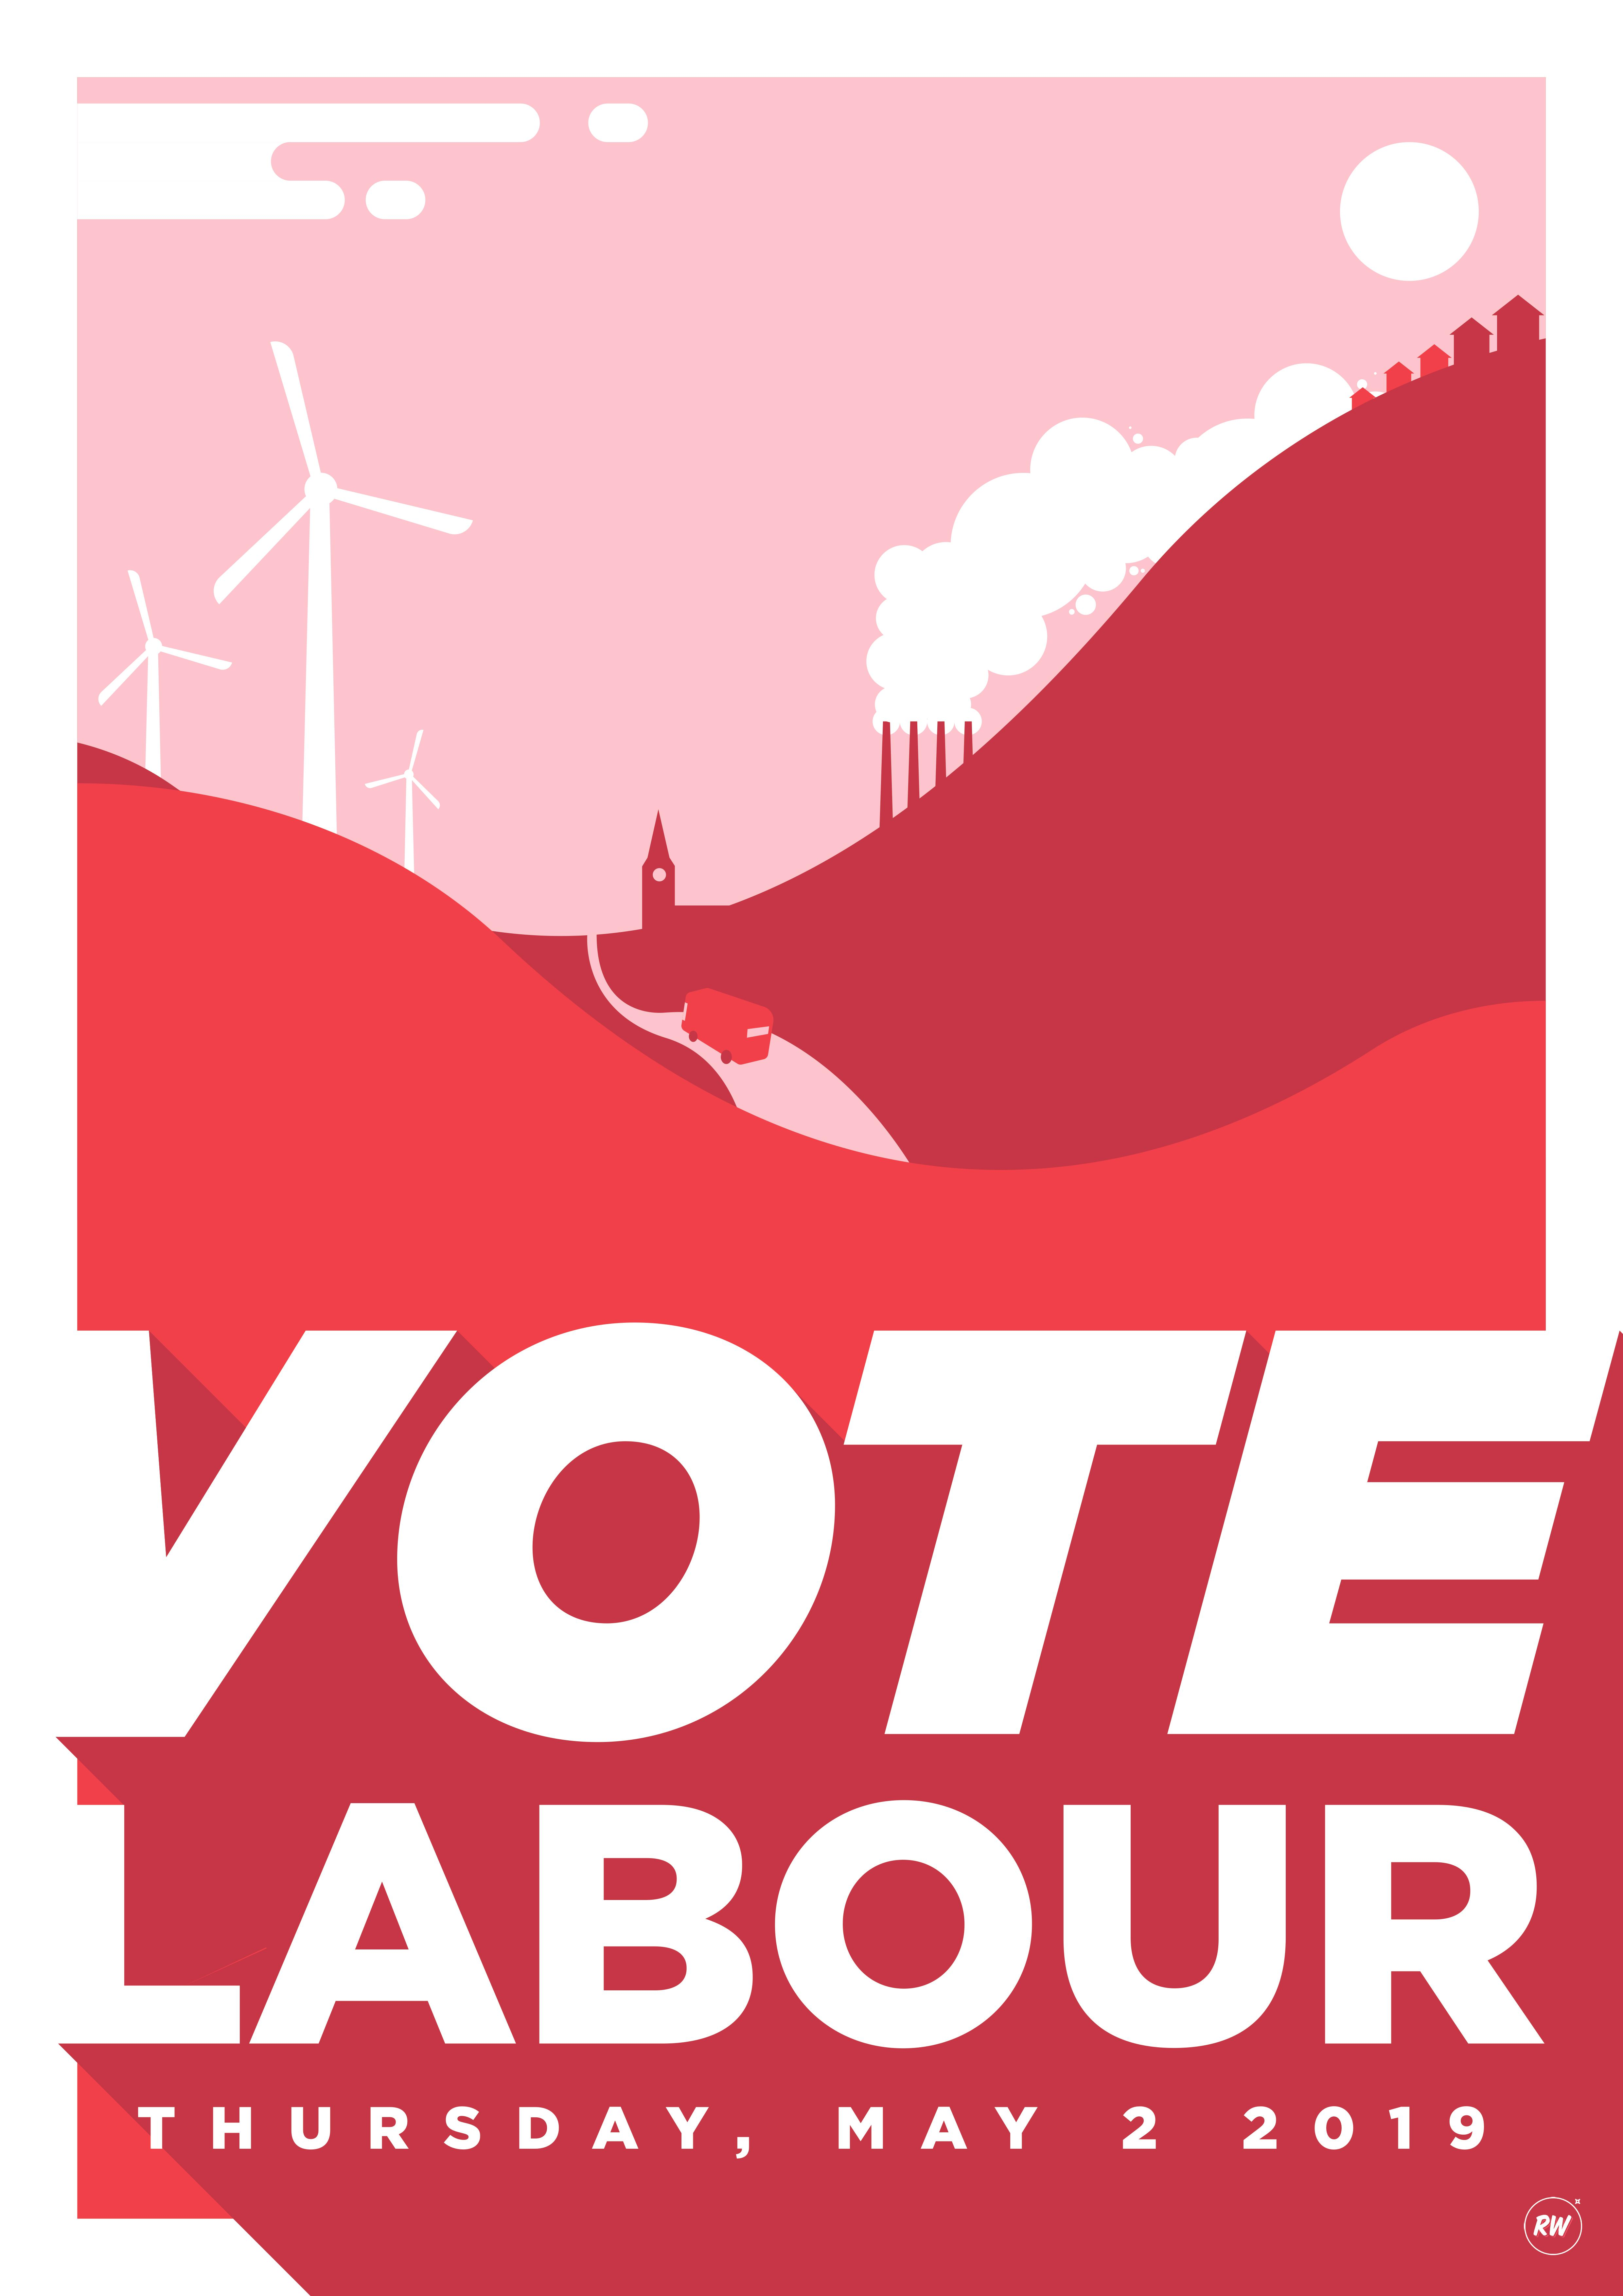 Robin Wilde for Labour Party Graphic Designers